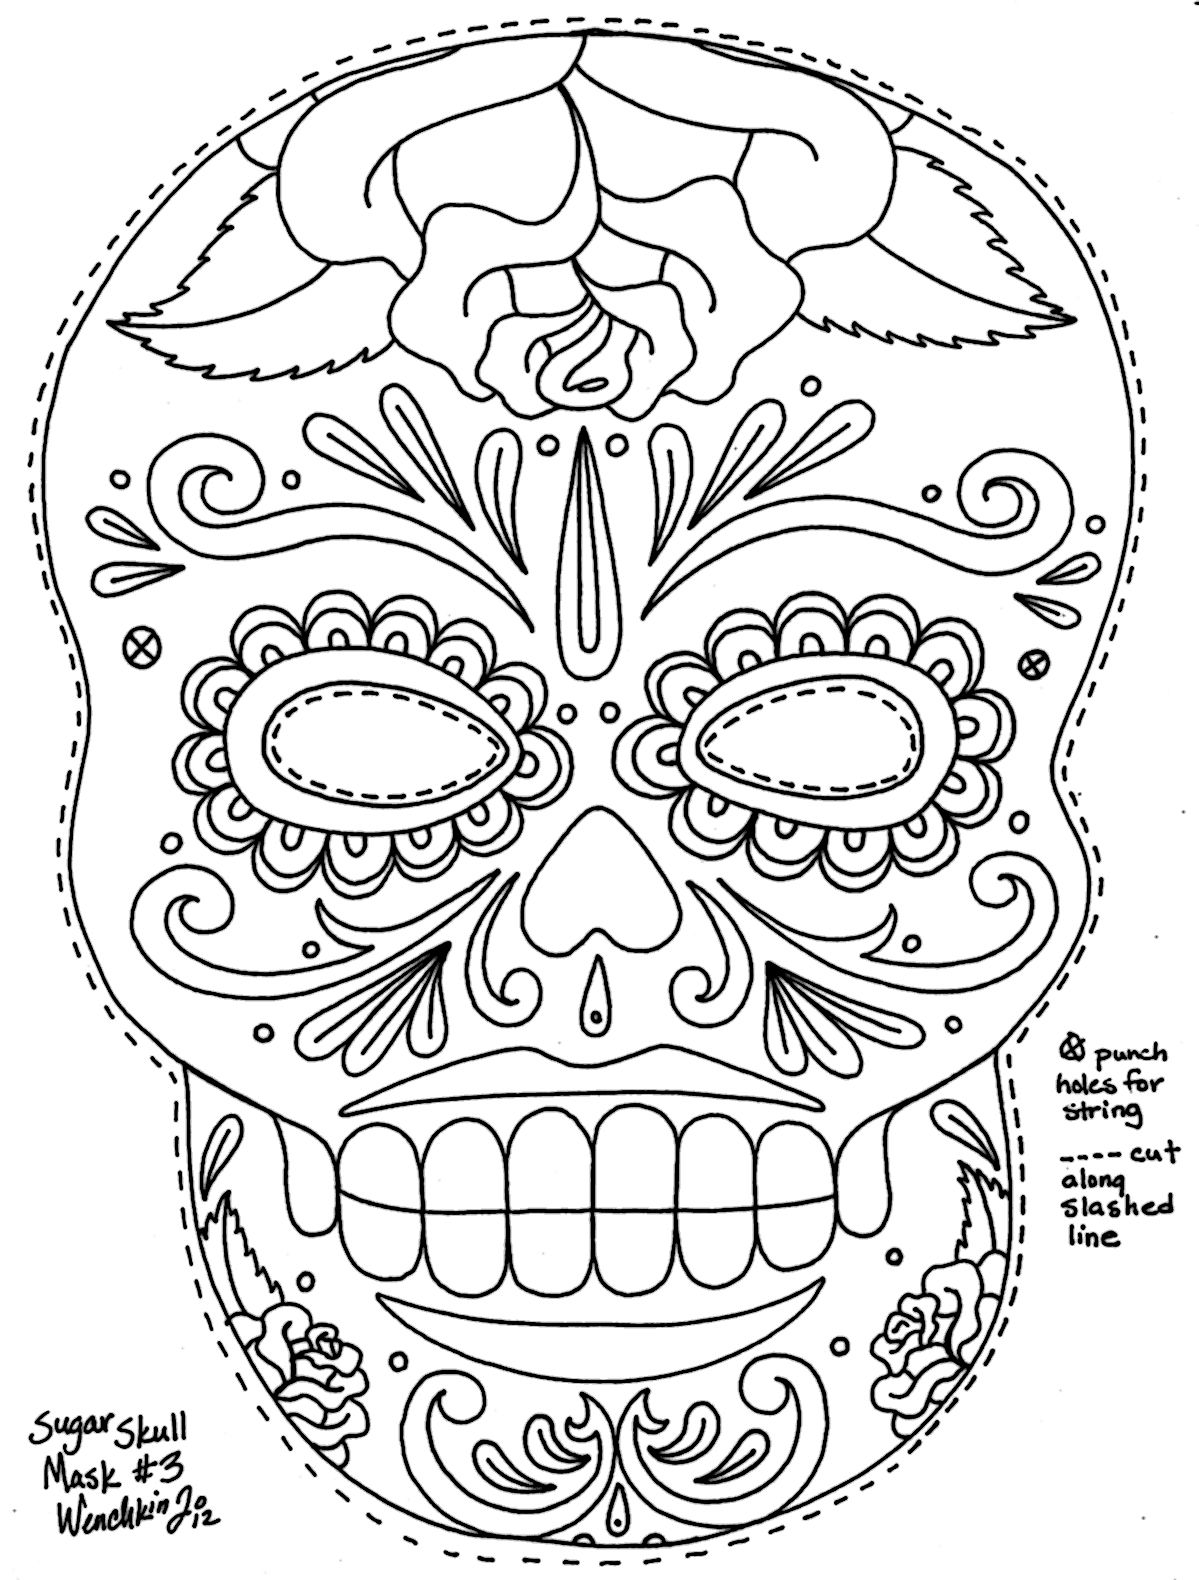 A Great Sugar Skull Mask Template Fun To Color Wear Yucca Flats NM Wenchkins Coloring Pages